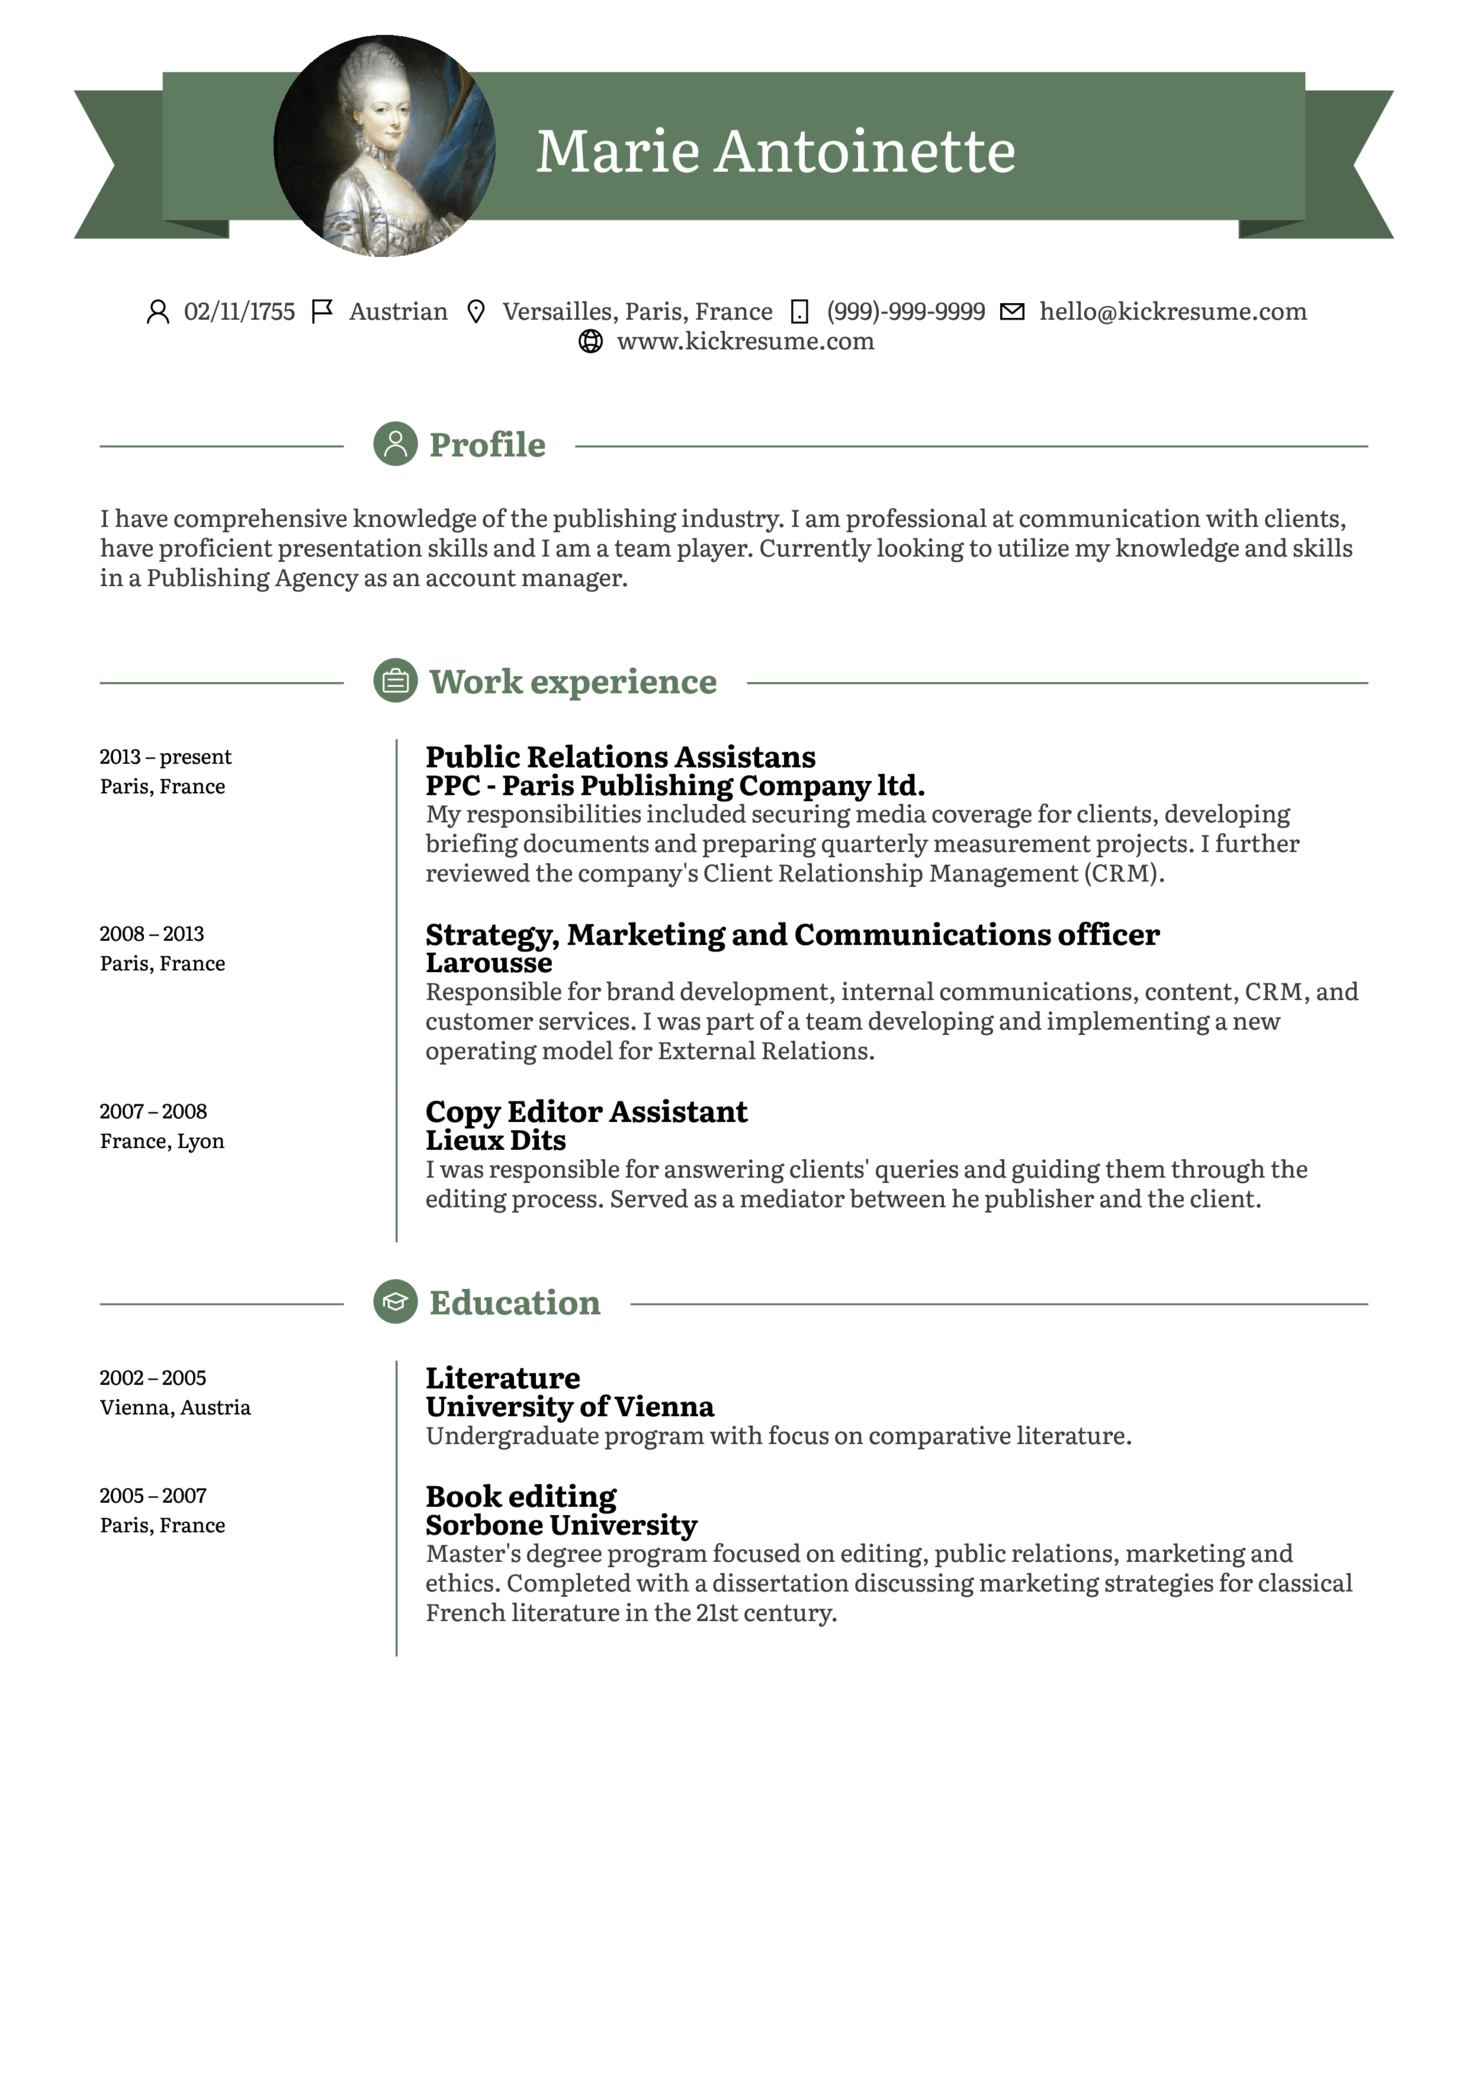 Entry Level Account Manager Resume Sample (Part 1)